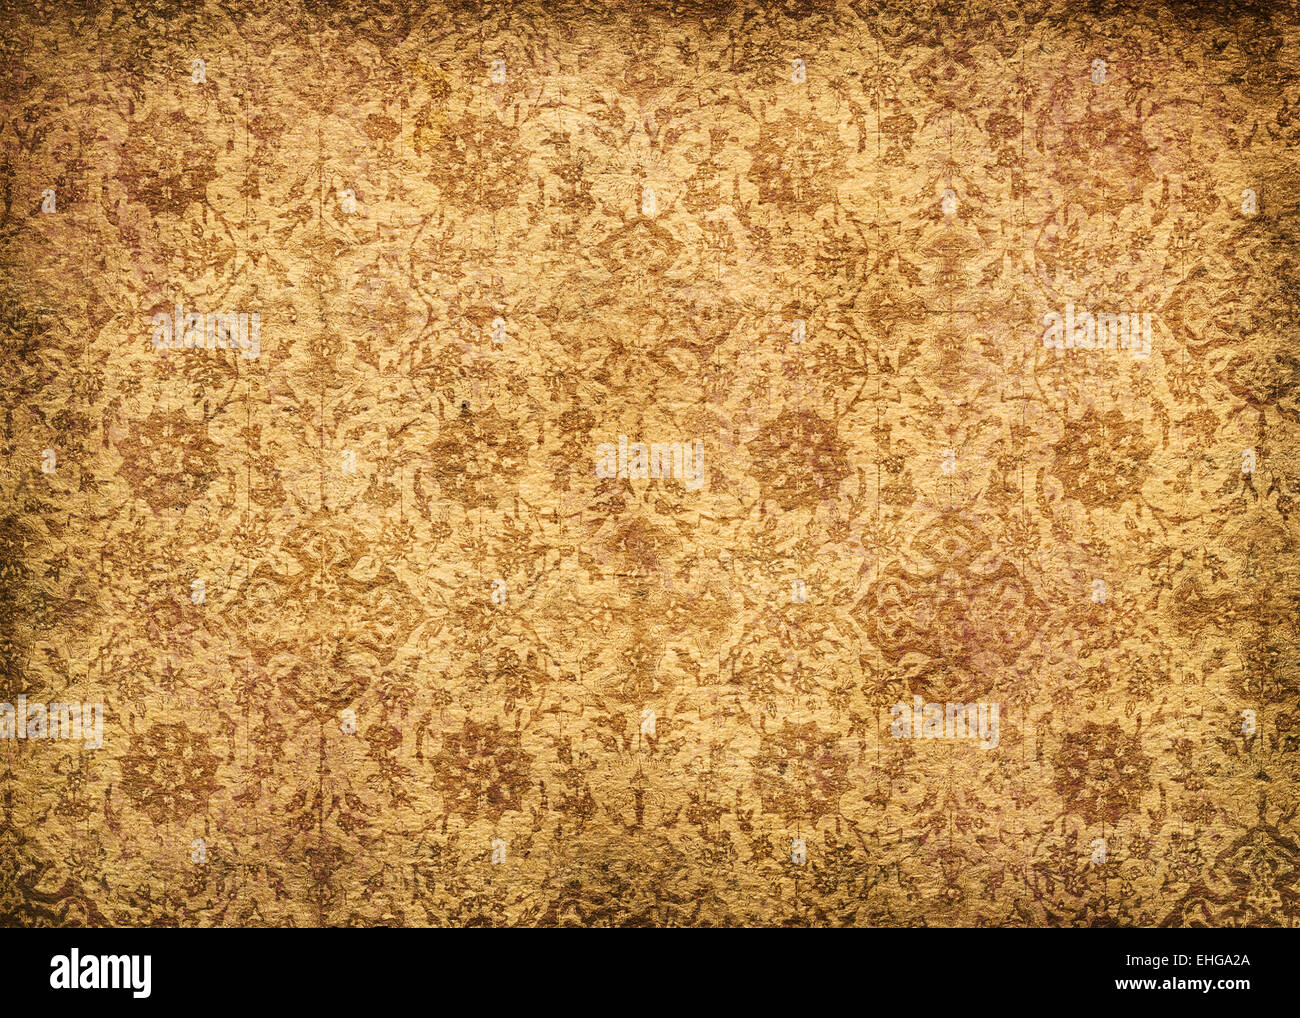 vintage wallpaper - perfect textured background - Stock Image